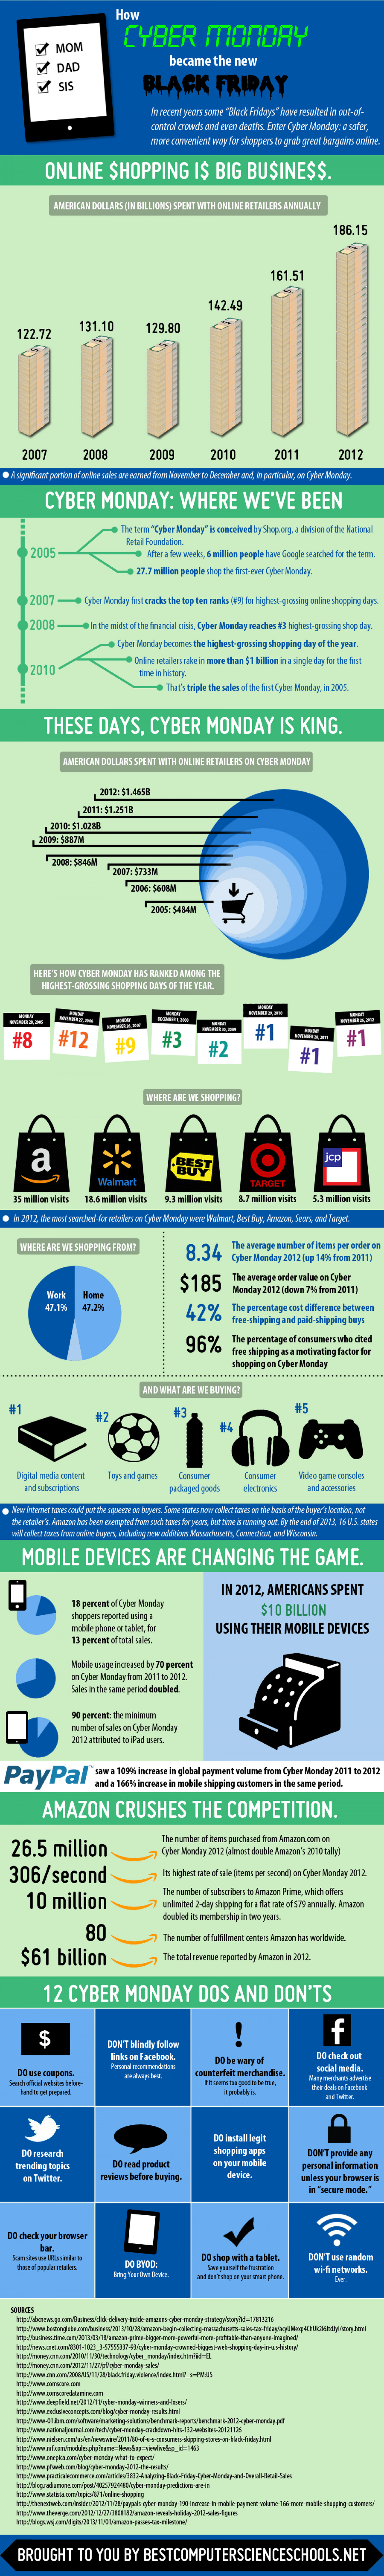 Cyber Monday: Behind the Numbers Infographic